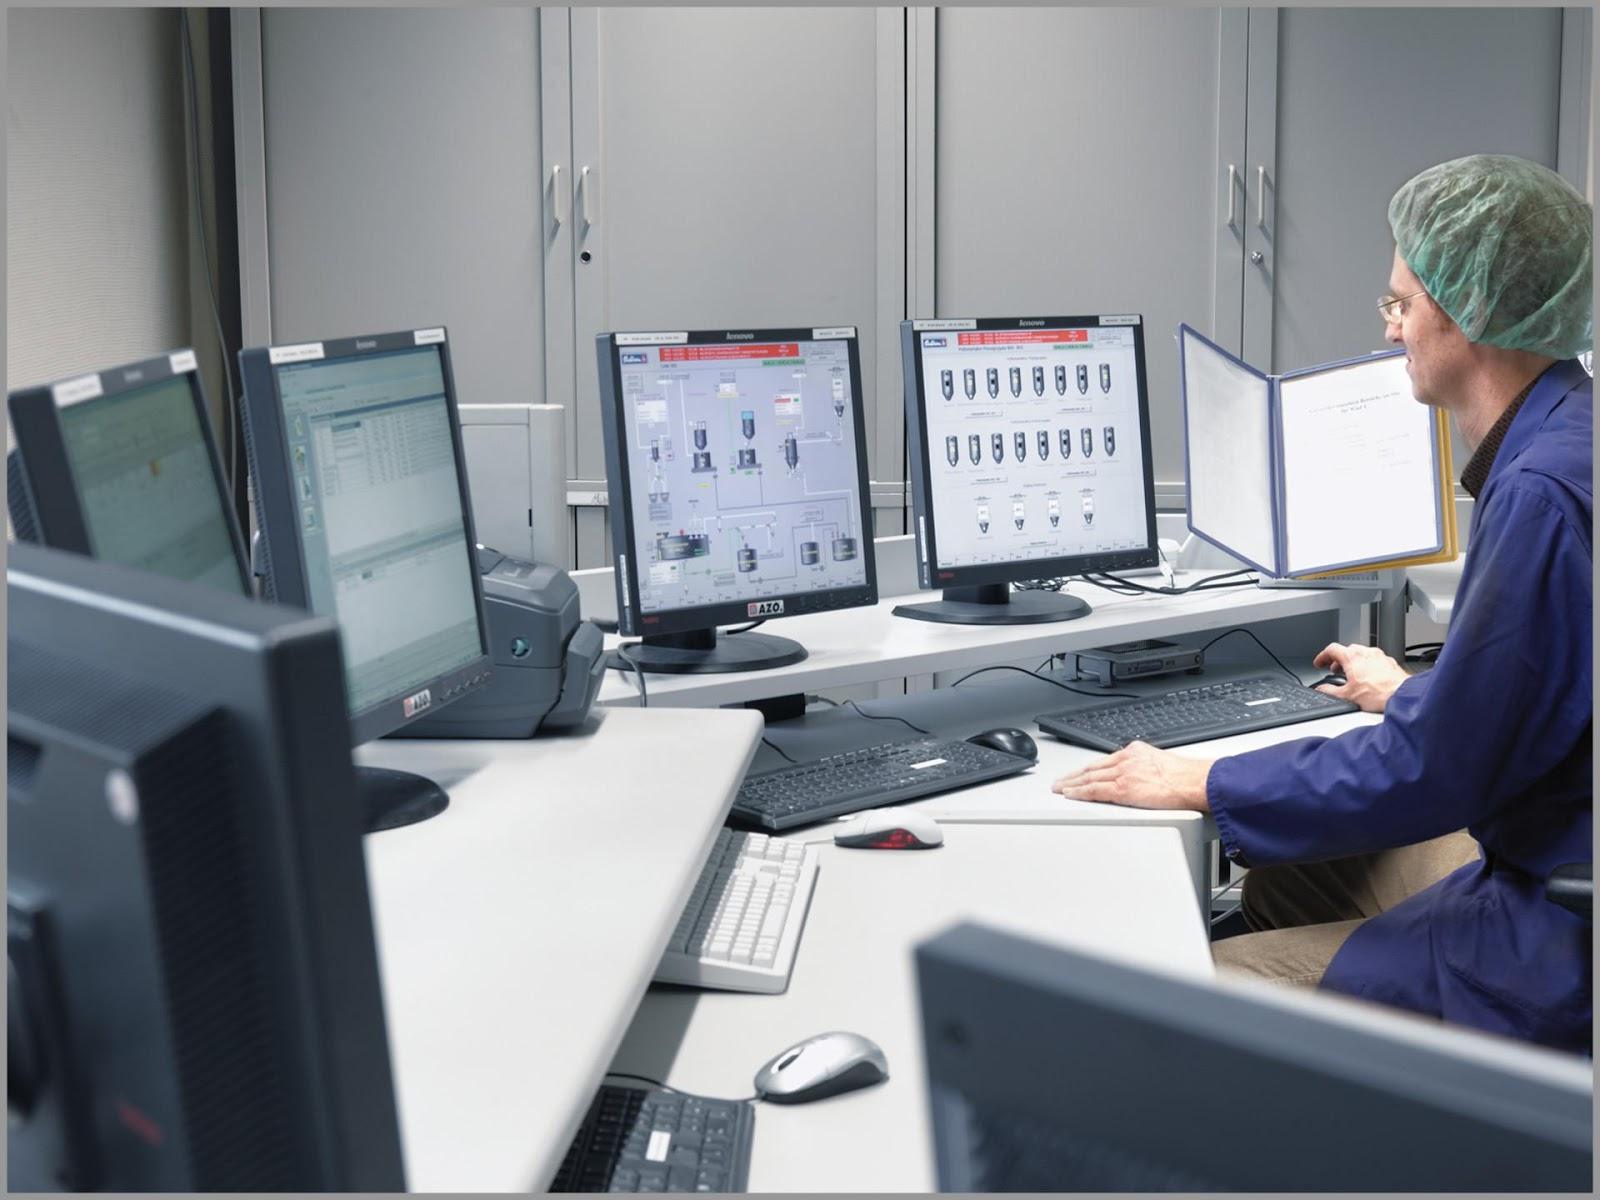 image1 (1)Operator using advanced manufacturing control systems to back up processes.